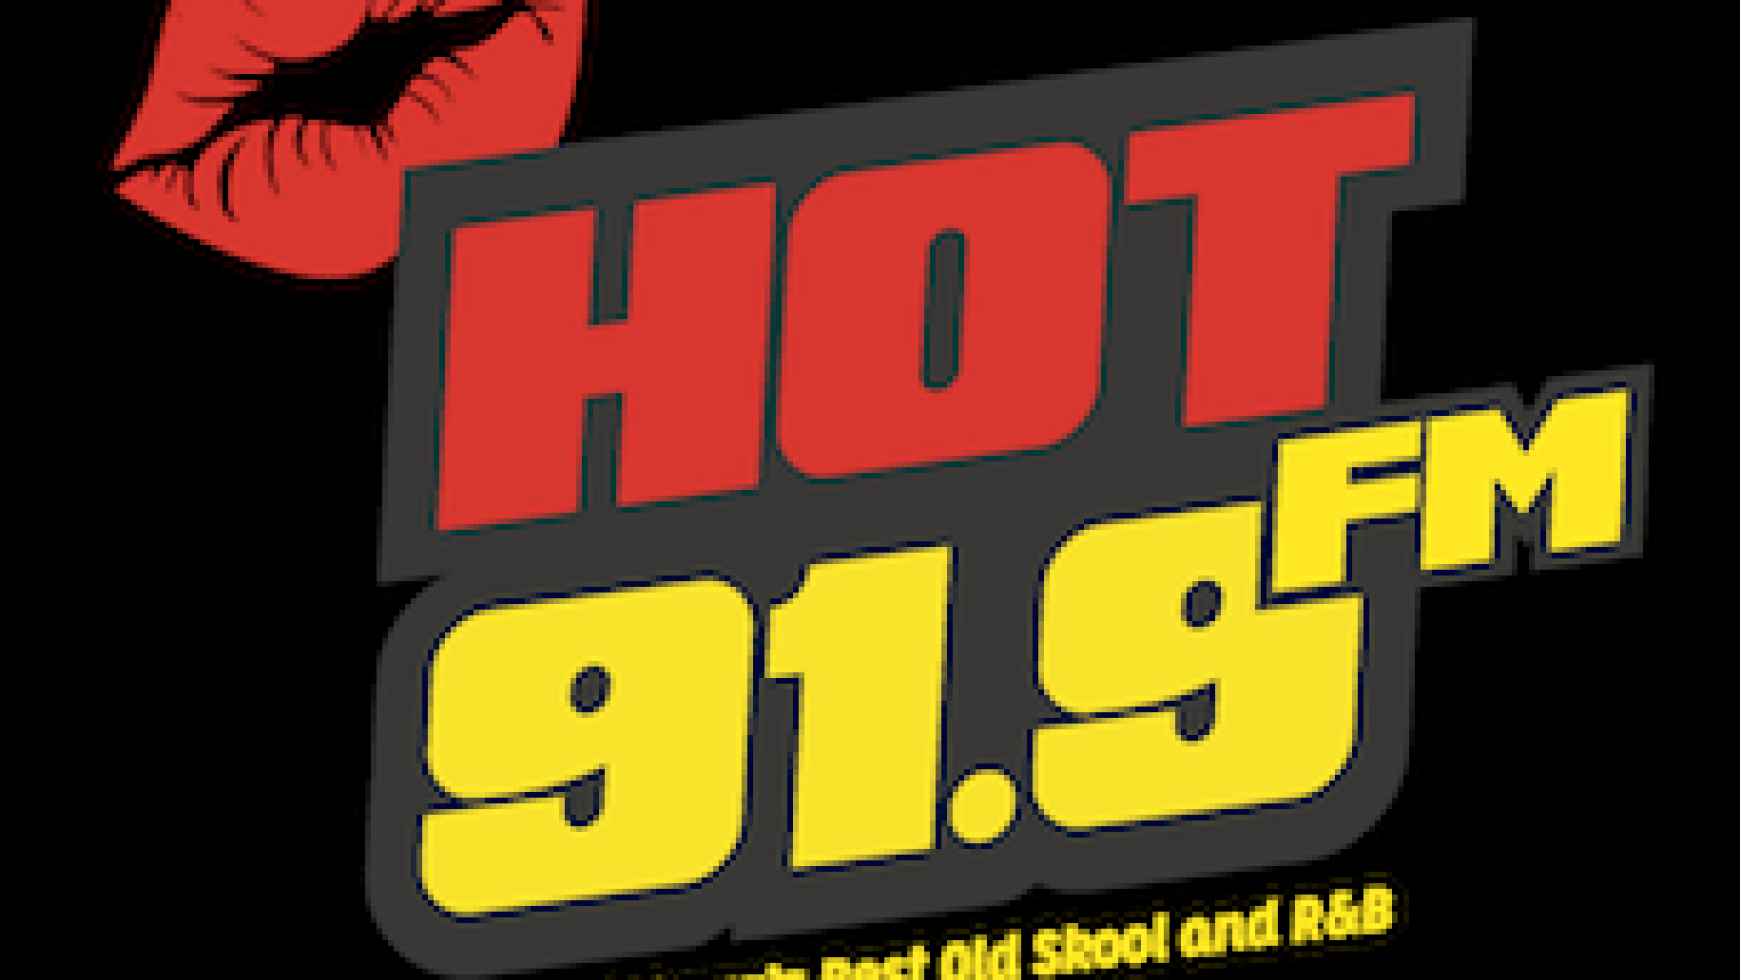 Hot 91.9 radio interview with Dr Karen Deller